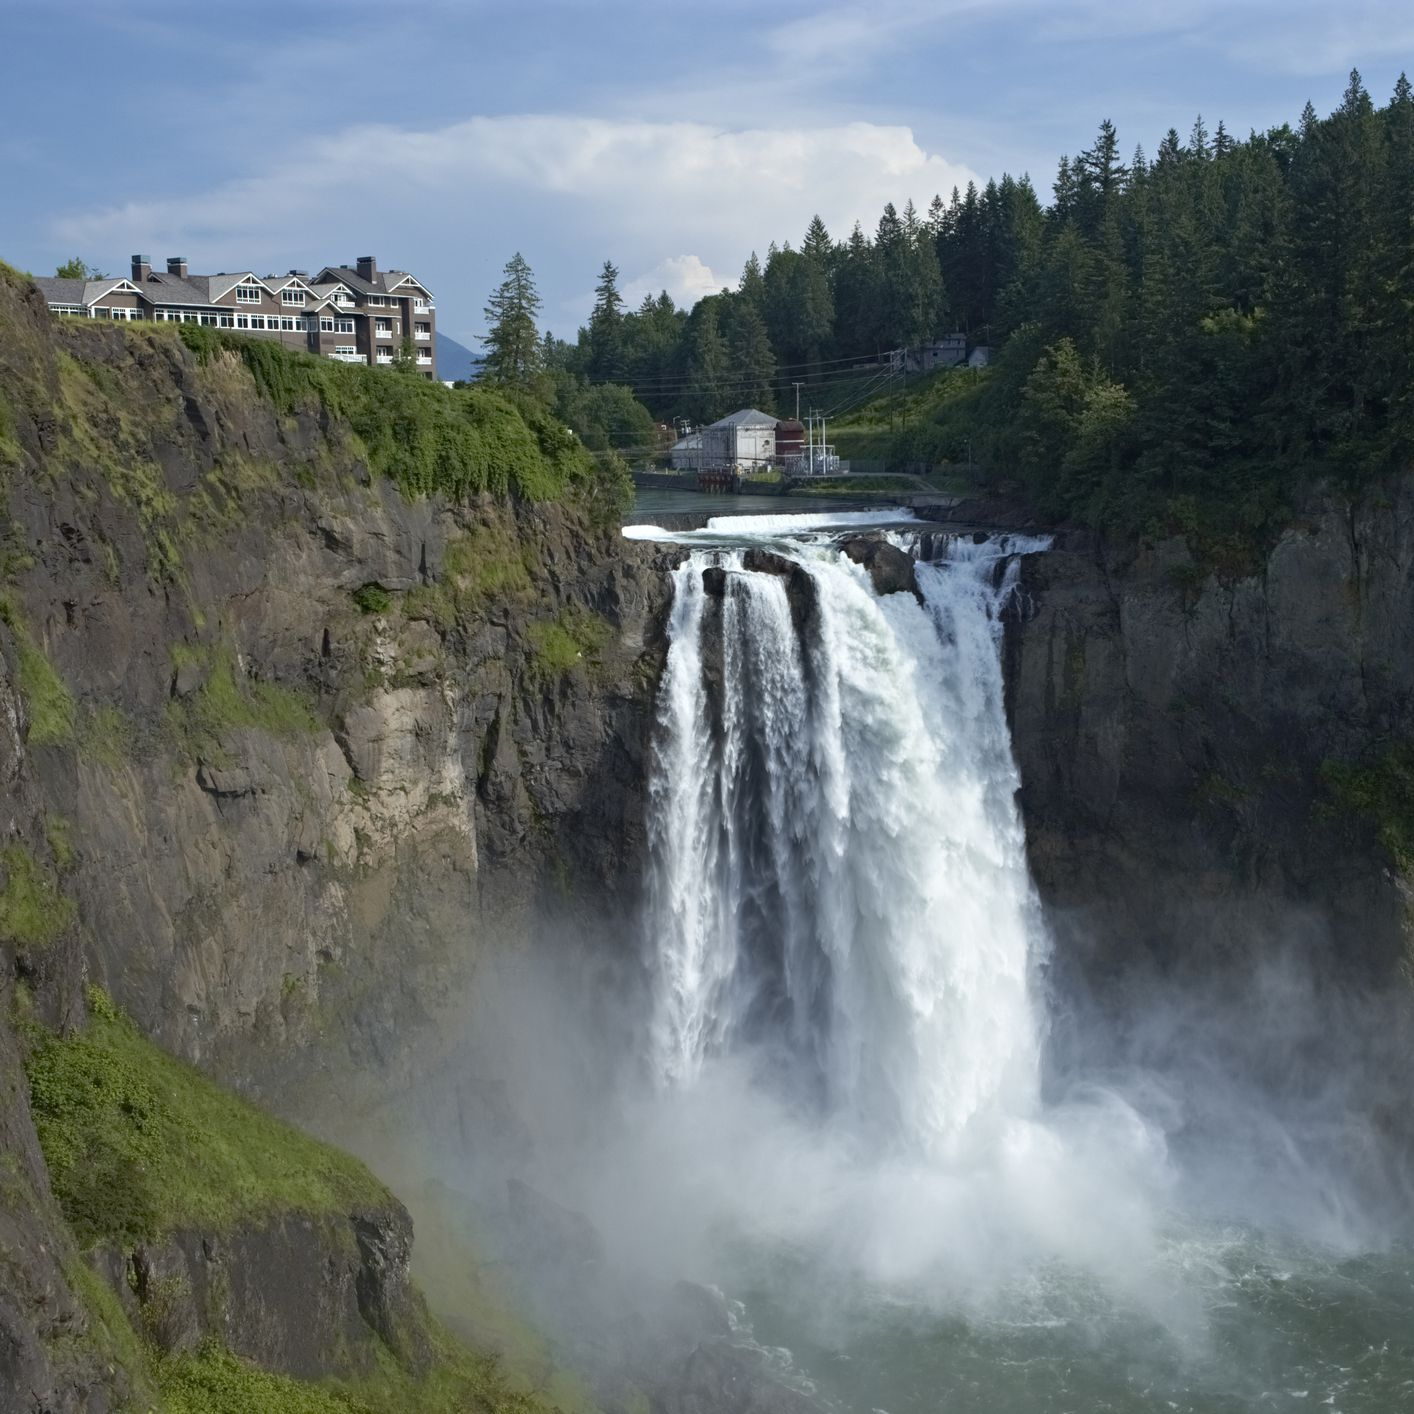 Seattle to Spokane: 5 Things to See on the Road